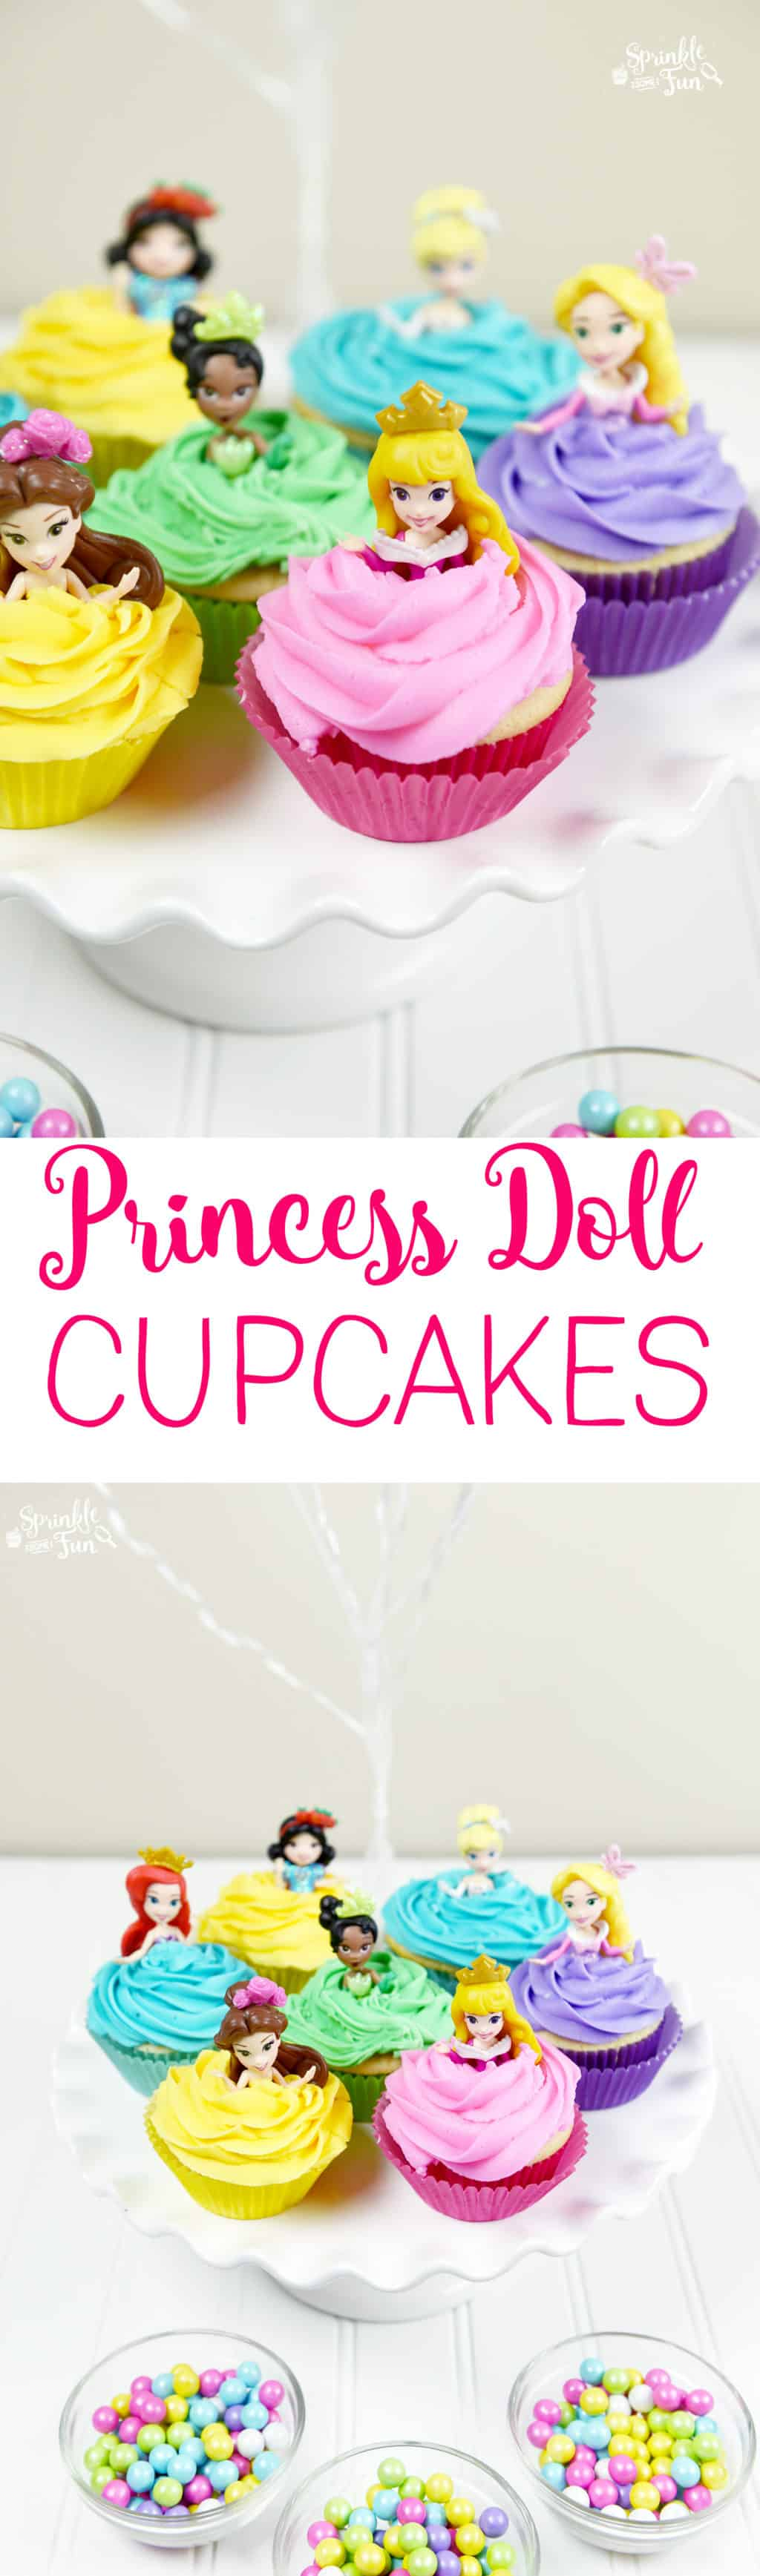 Disney Princess Doll Cupcakes are the perfect treat for any Disney princess fan and will be the hit of any Disney princess party.